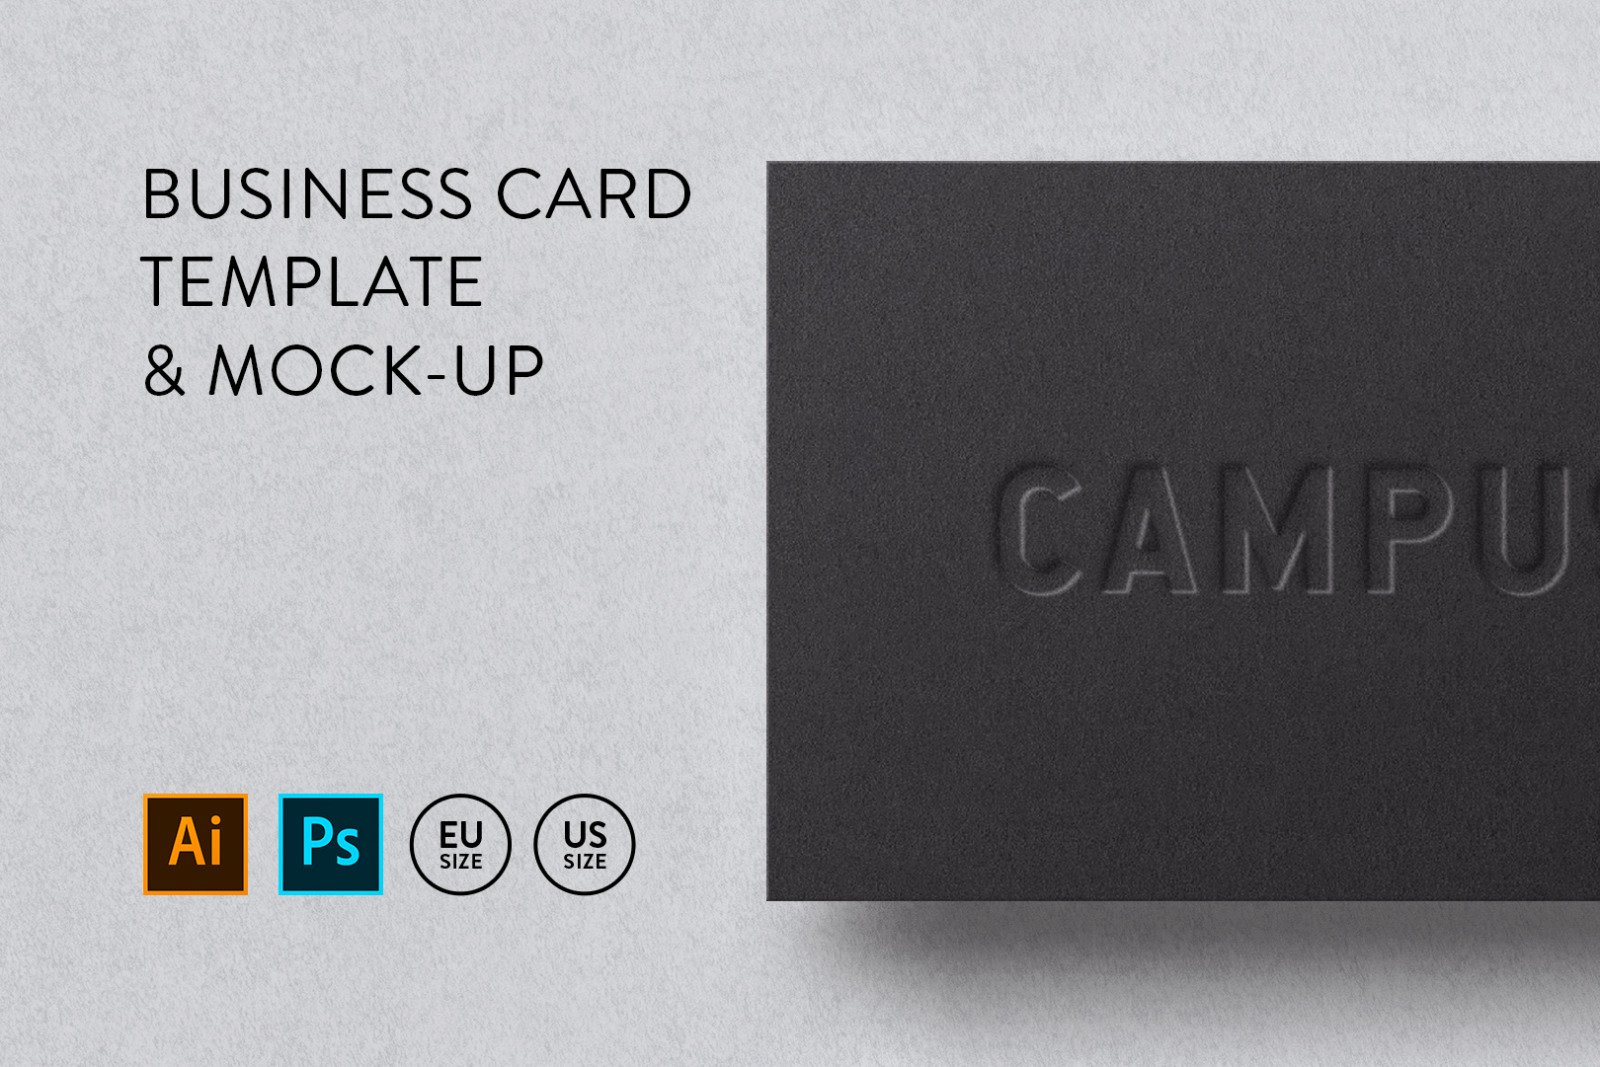 Business card Template & Mock-up #44